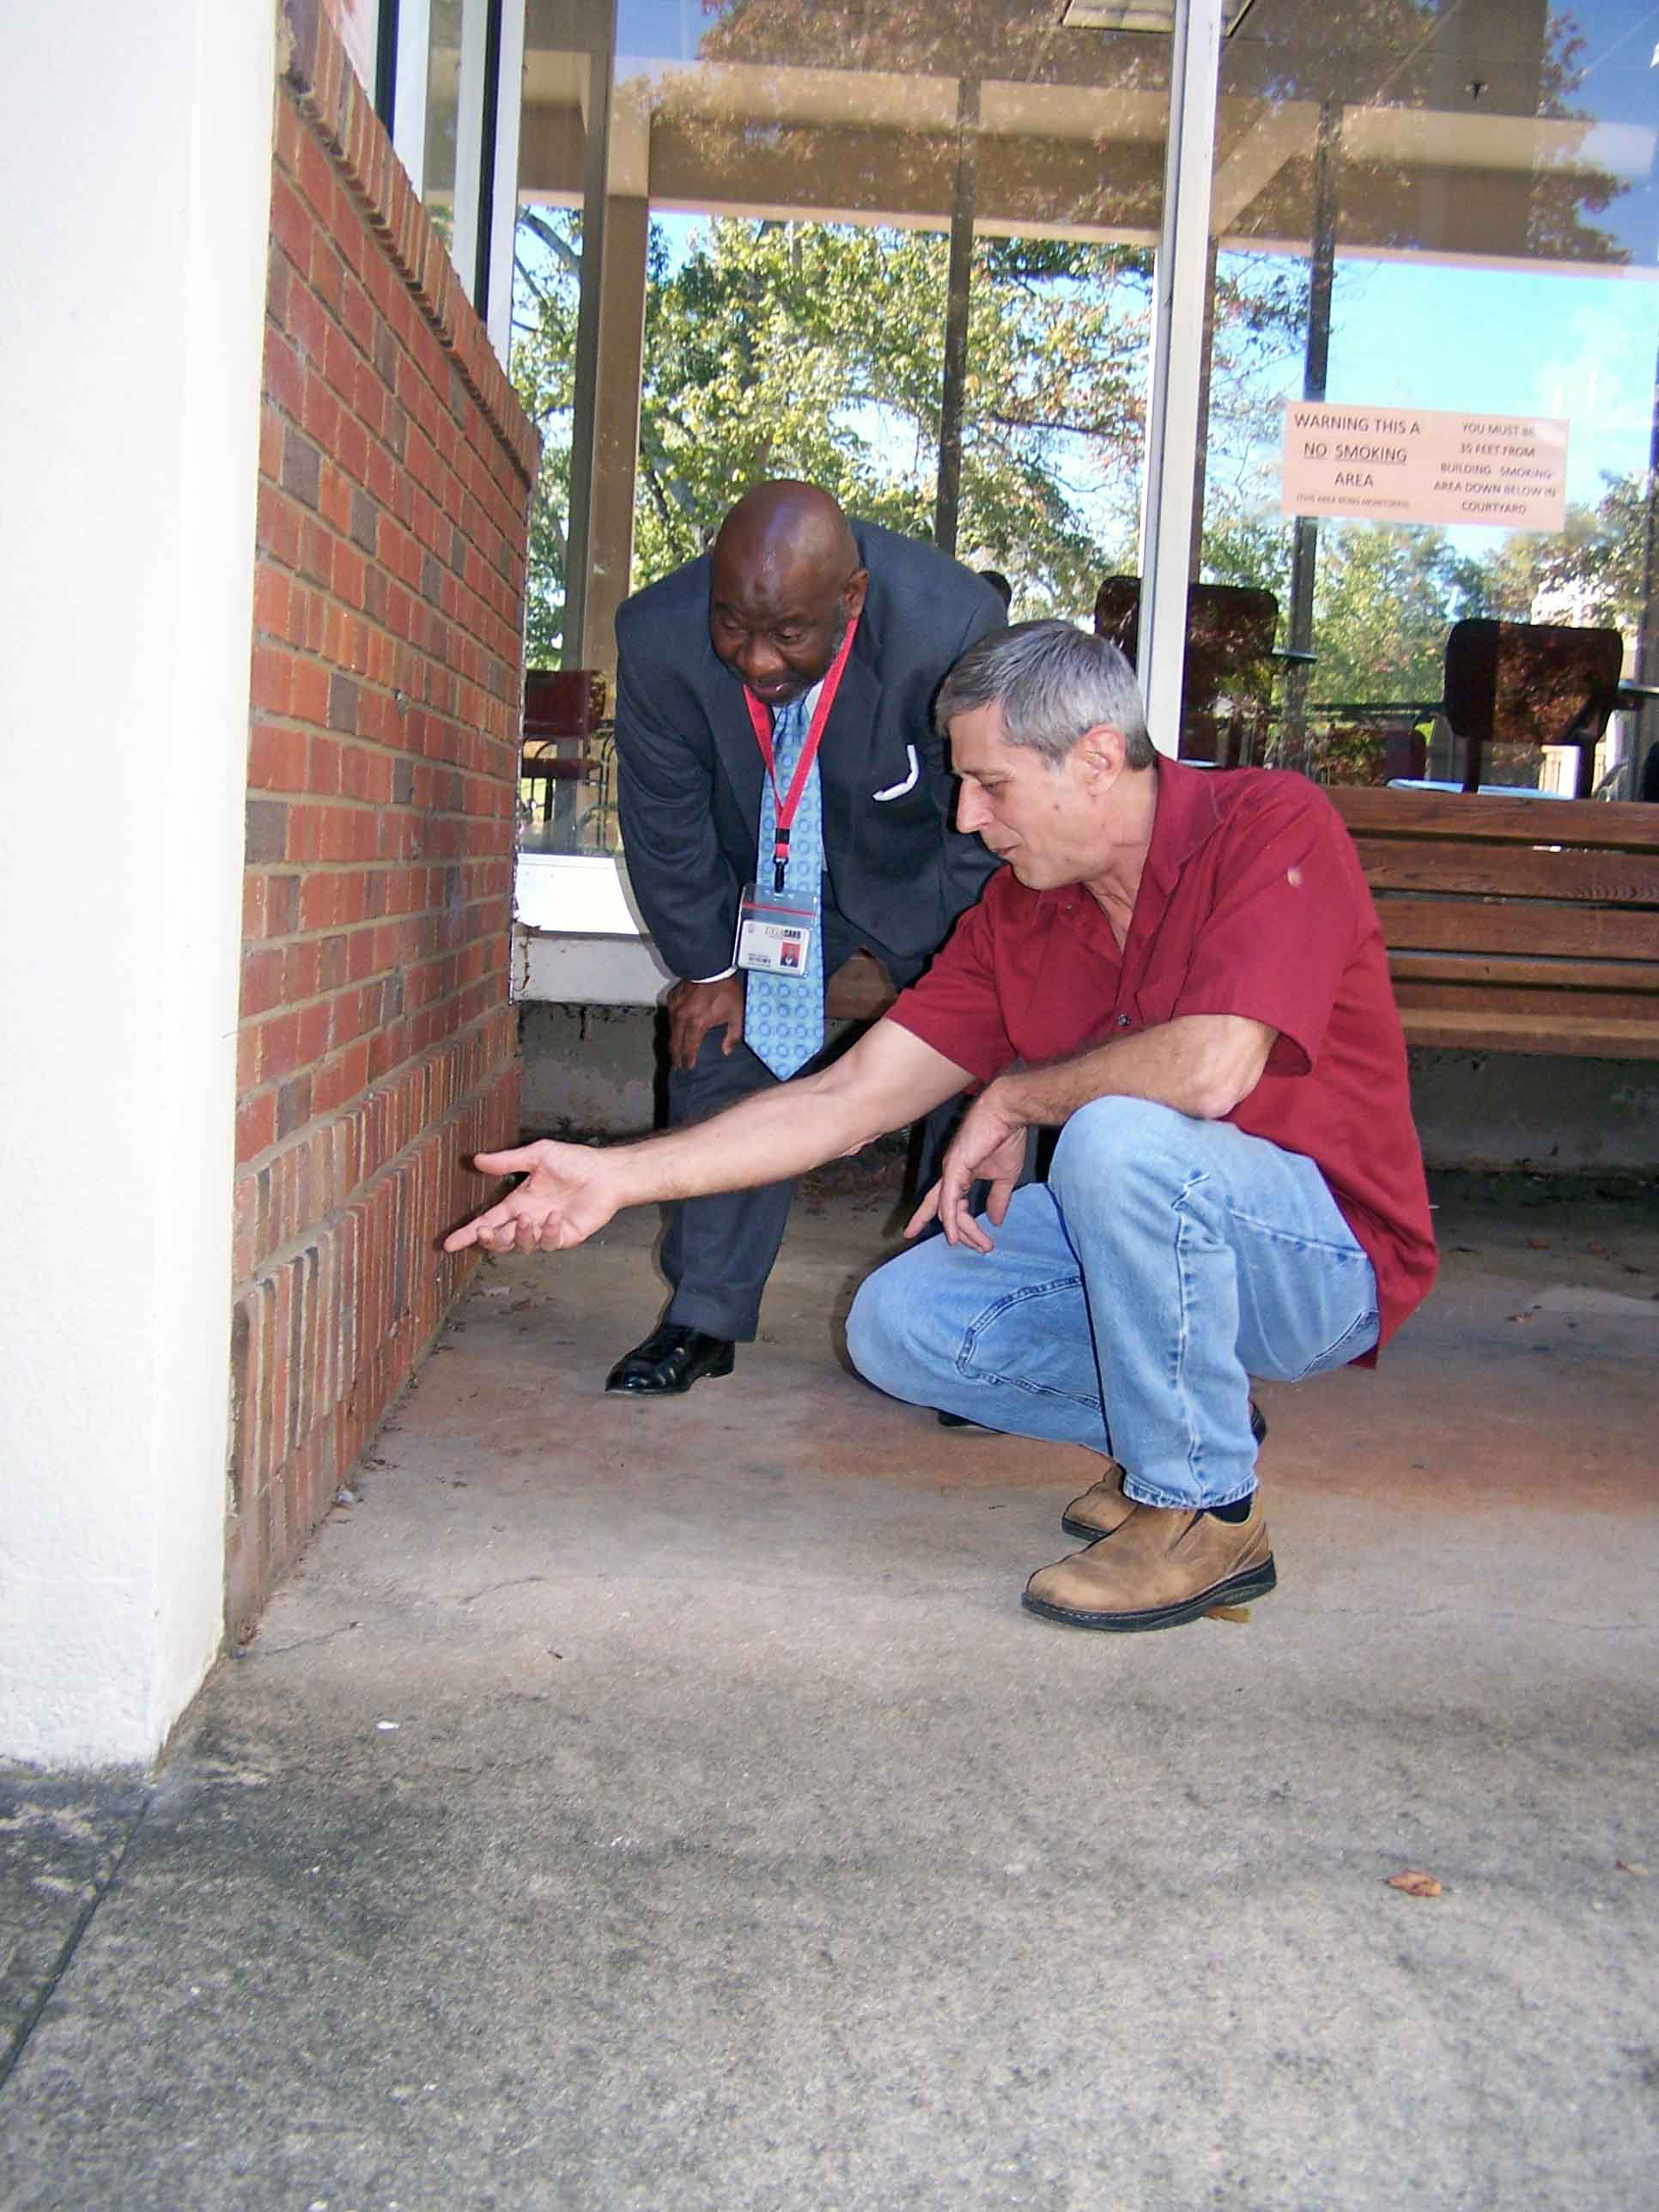 UGA College of Agricultural and Environmental Sciences entomologist Brian Forschler shows  Dexter Fisher, director of services for UGA Facilities Management, the spot in a wall at the Biological Sciences Building where termites made entry and started to swarm in an office.